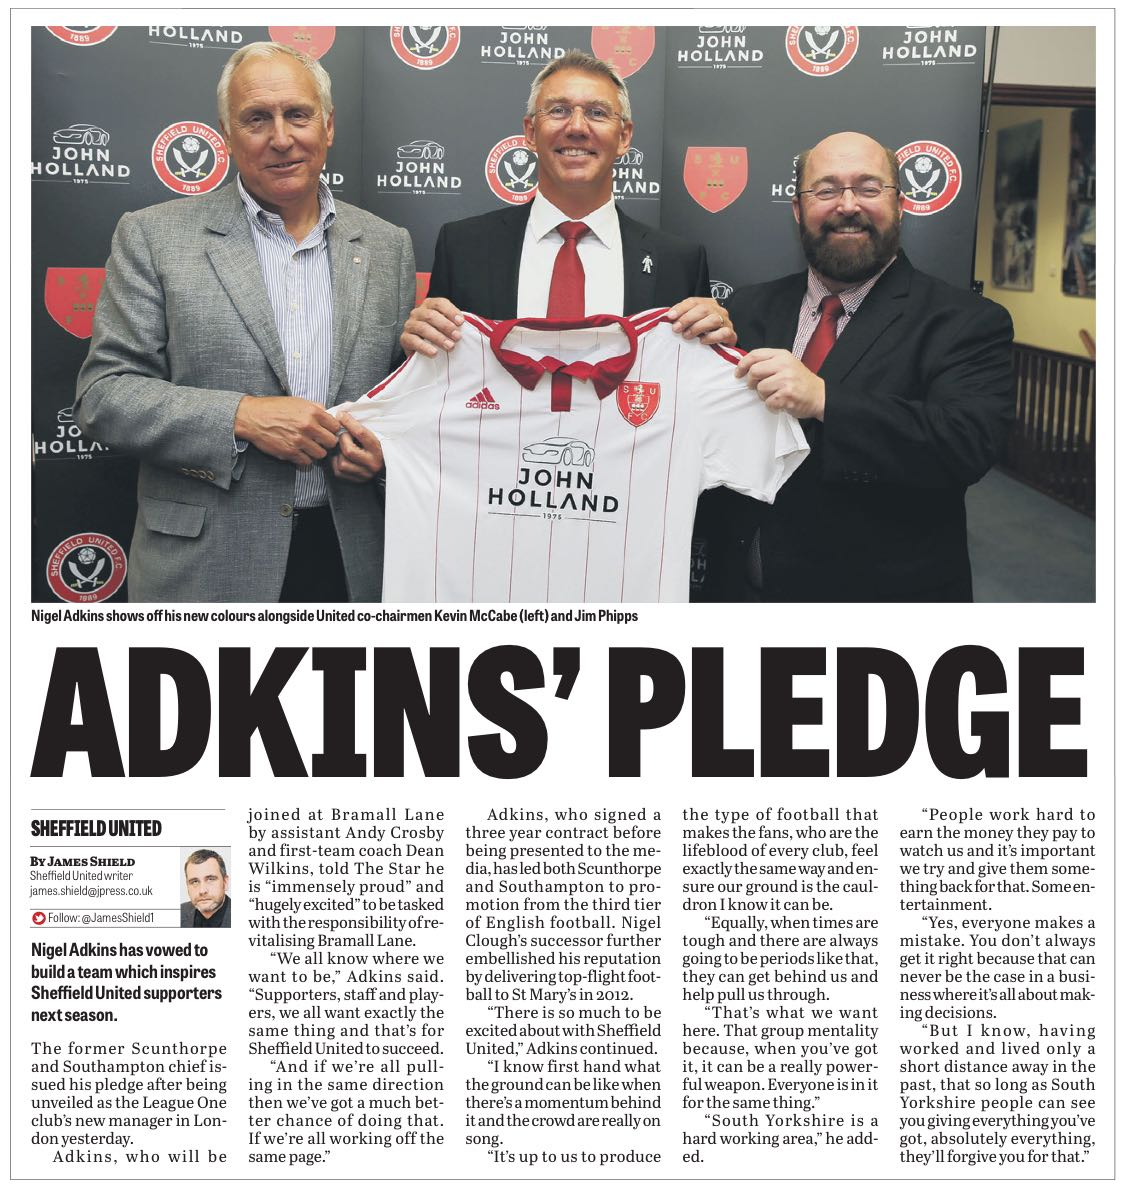 UNITED WE STAND:  HOW TODAY'S STAR REPORTED NEWS OF NiGEL ADKINS' APPOINTMENT AT THE LANE ON A THREE-YEAR CONTRACT